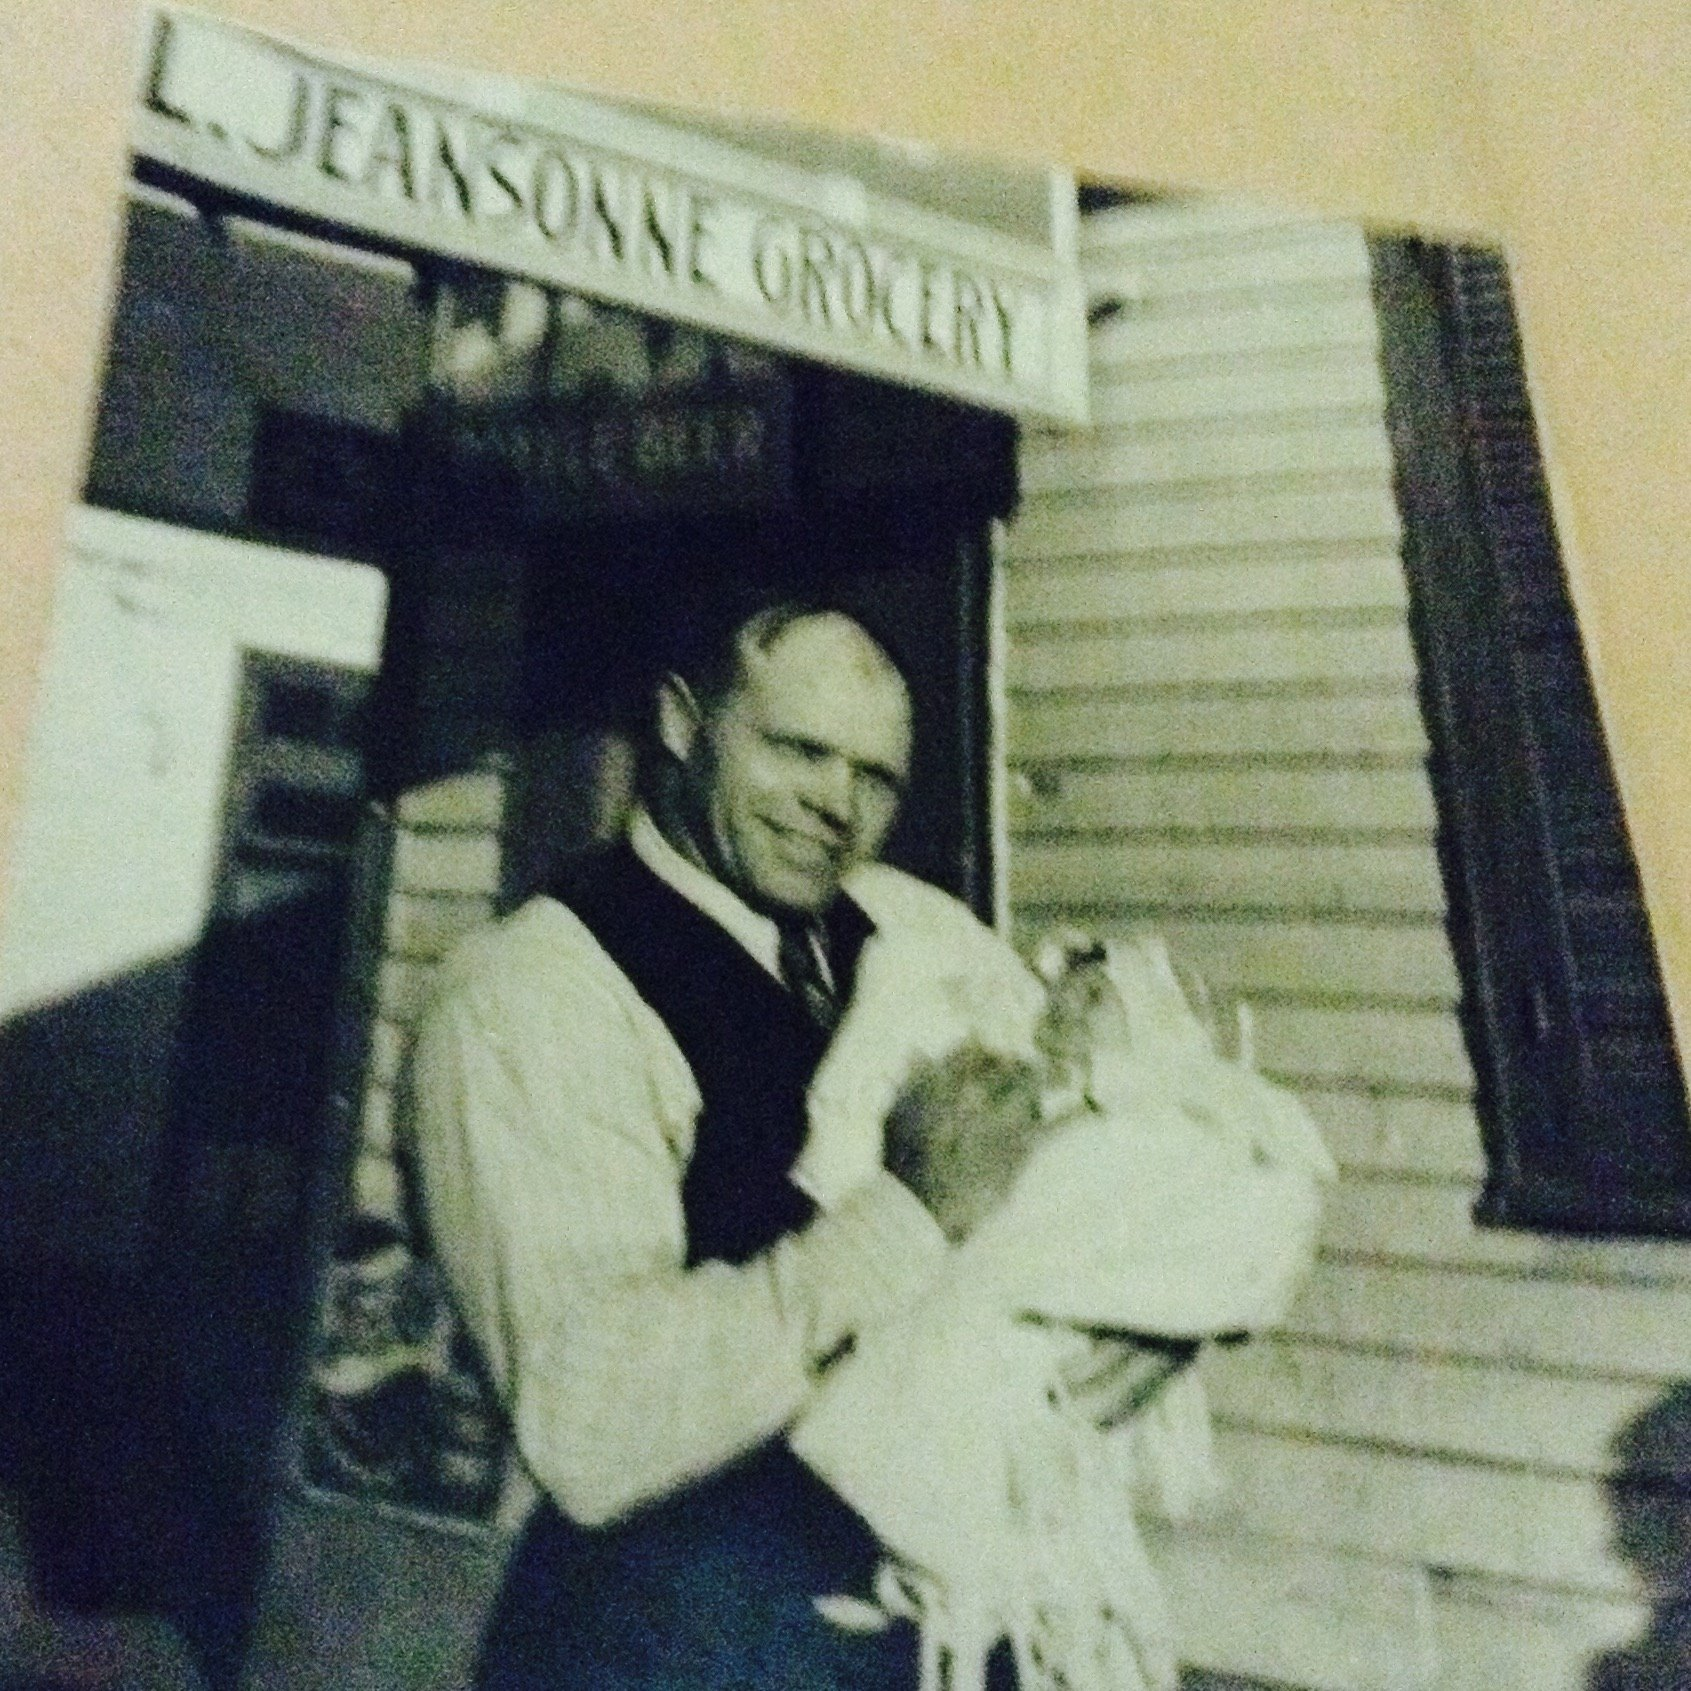 Jeansonne Grocery New Orleans